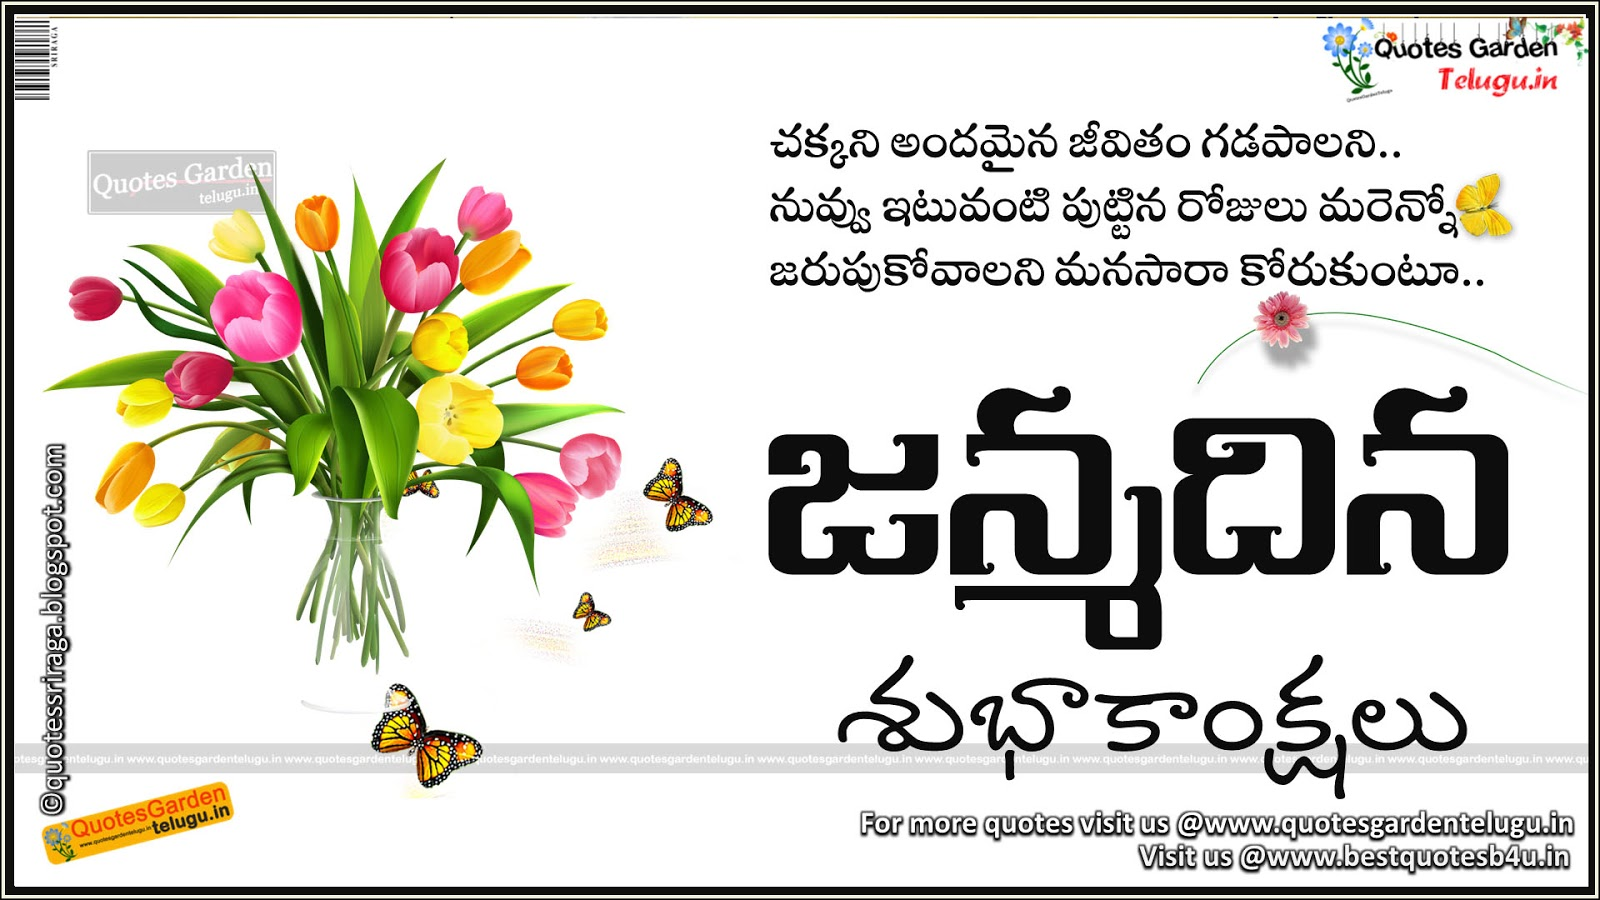 beatiful birthday greetings wishes in telugu quotes